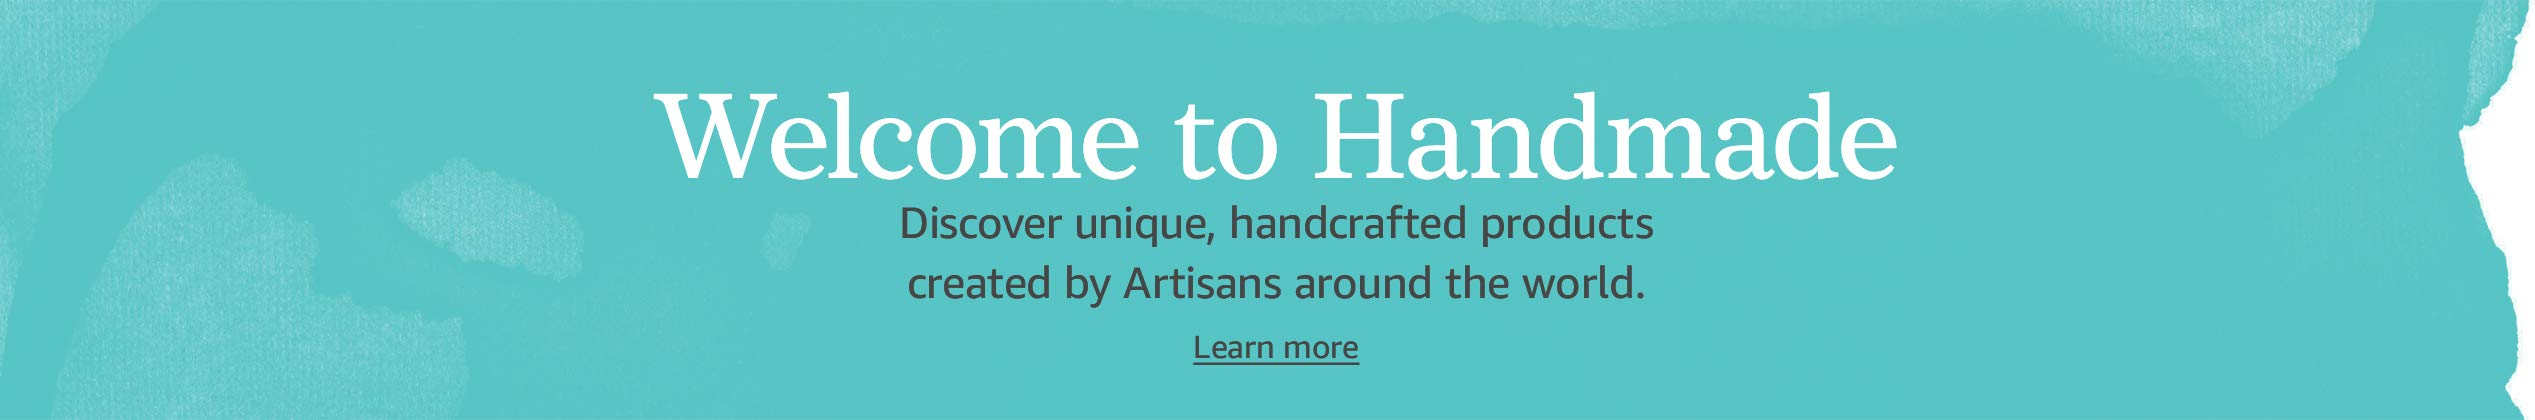 Welcome to Handmade